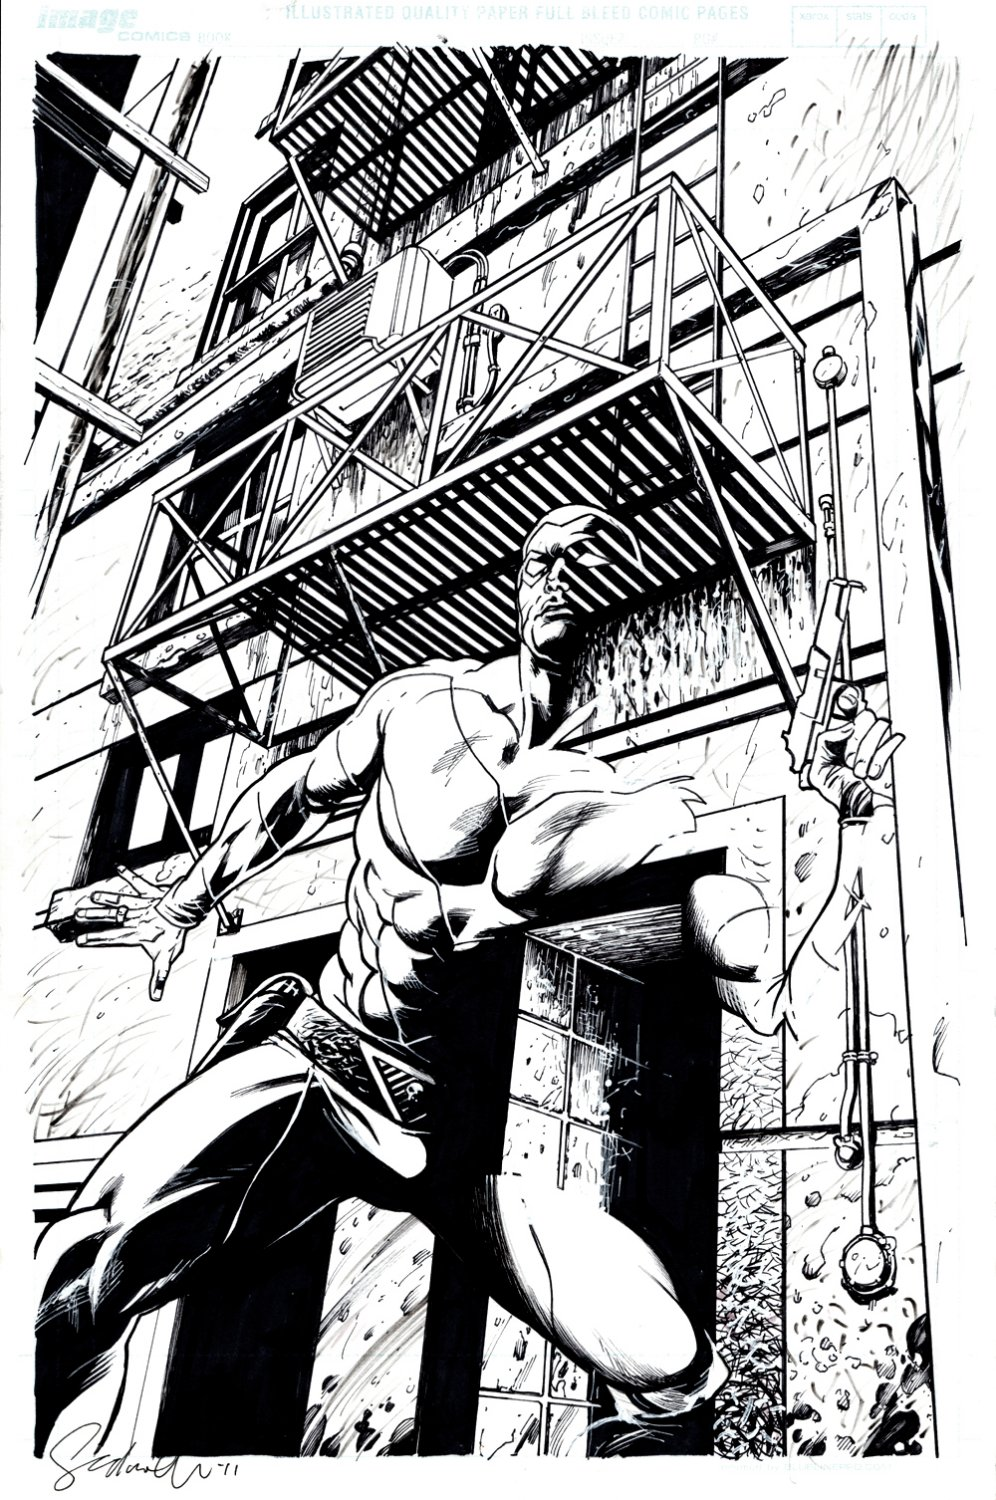 The Last Phantom #7 Cover (SOLD LIVE ON THE ROMITAMAN ART DROP PODCAST ON 10-9-2021)